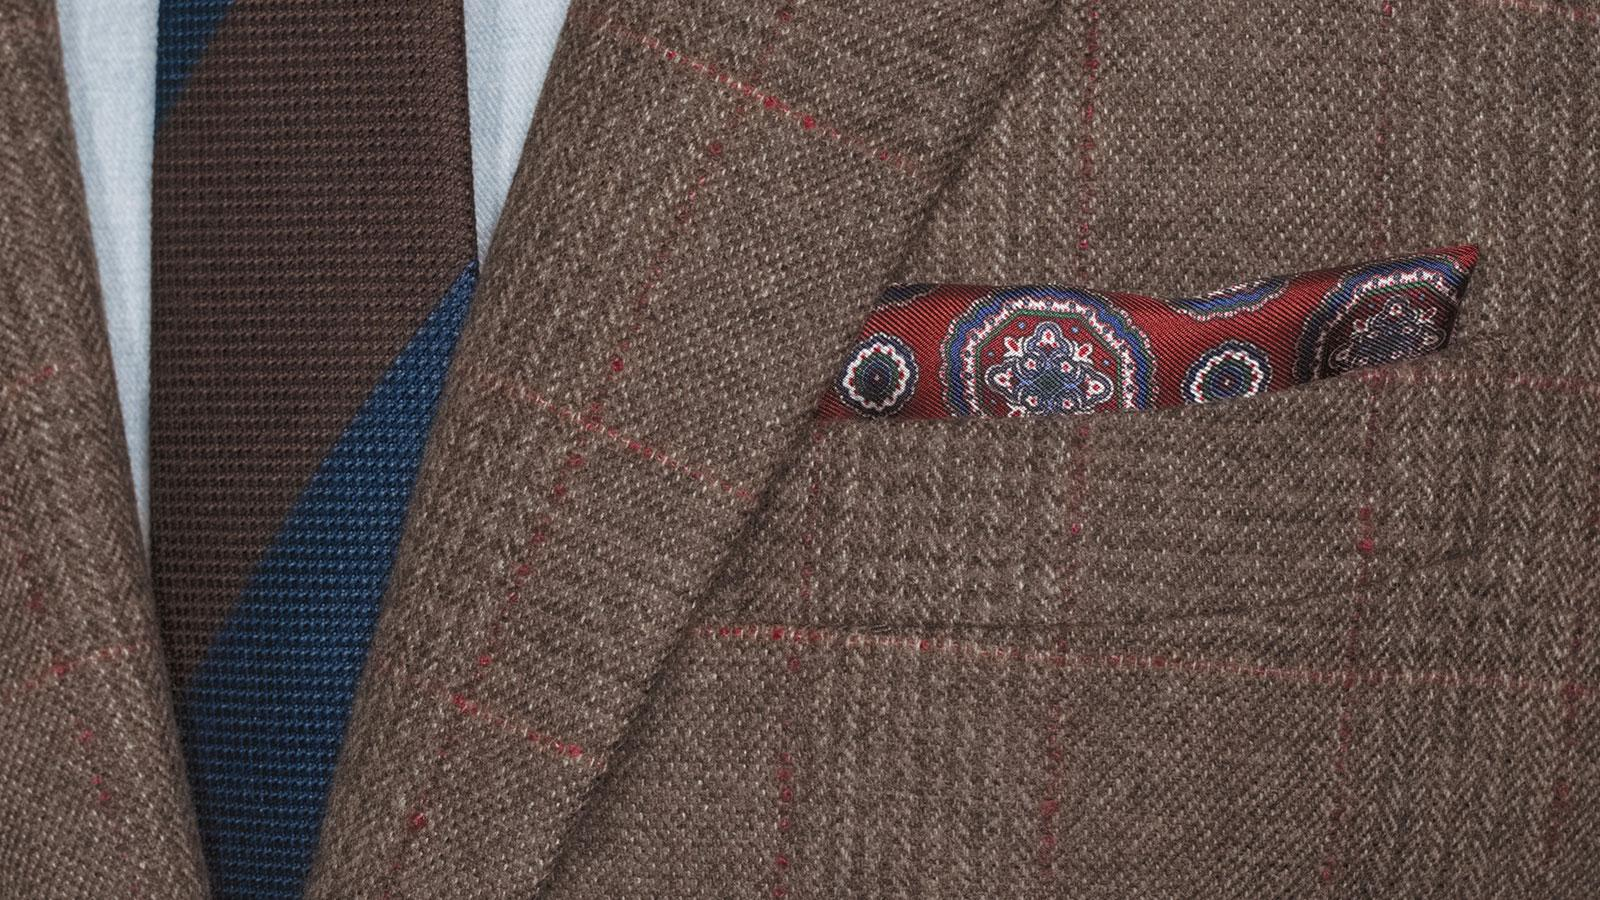 Brown Plaid with Red Overcheck Wool & Cashmere Blazer - slider image 1